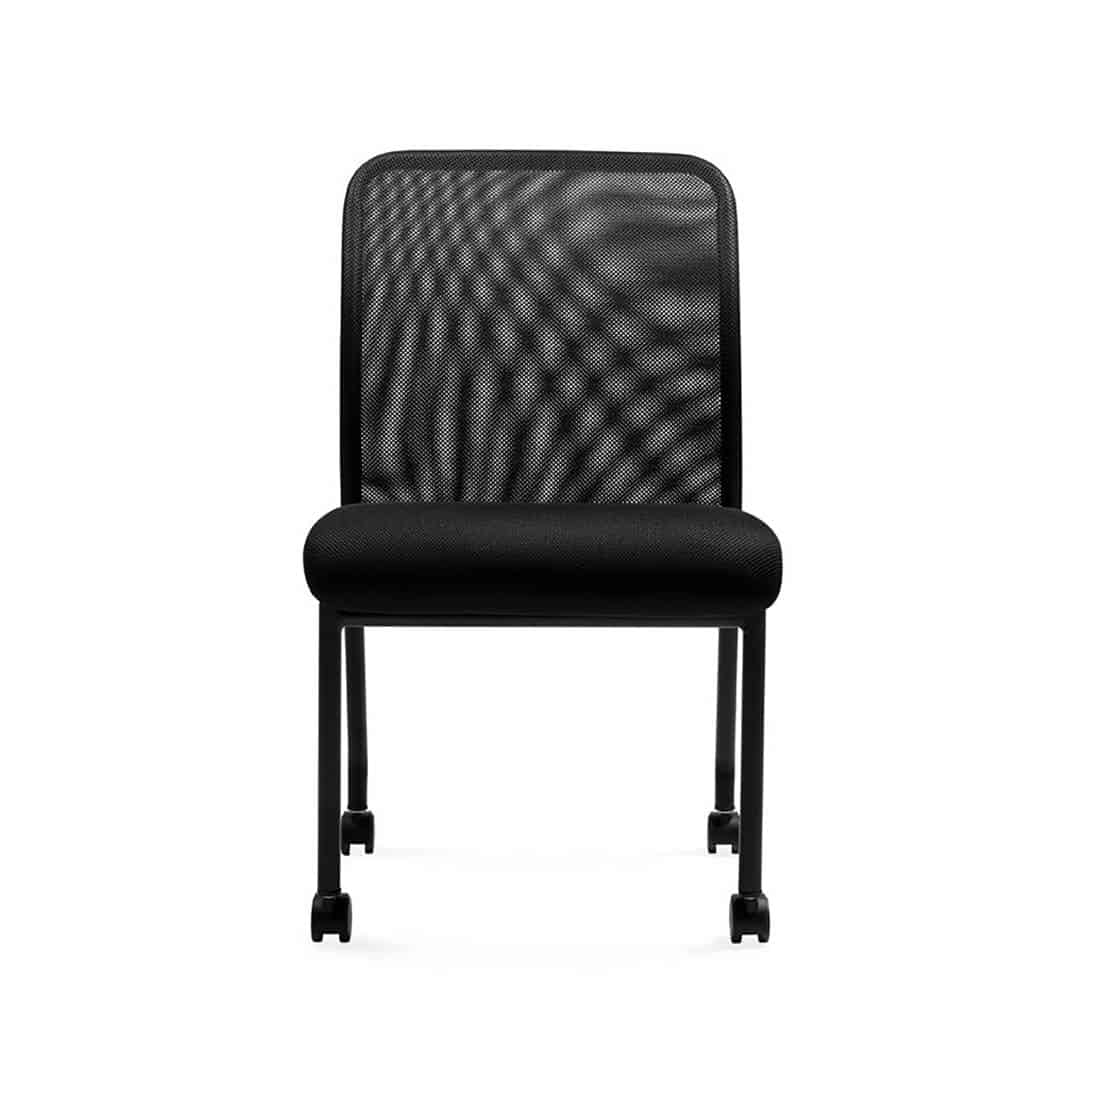 Boardroom Furniture For Sale: Armless Mesh Back Conference Room Chair On Casters